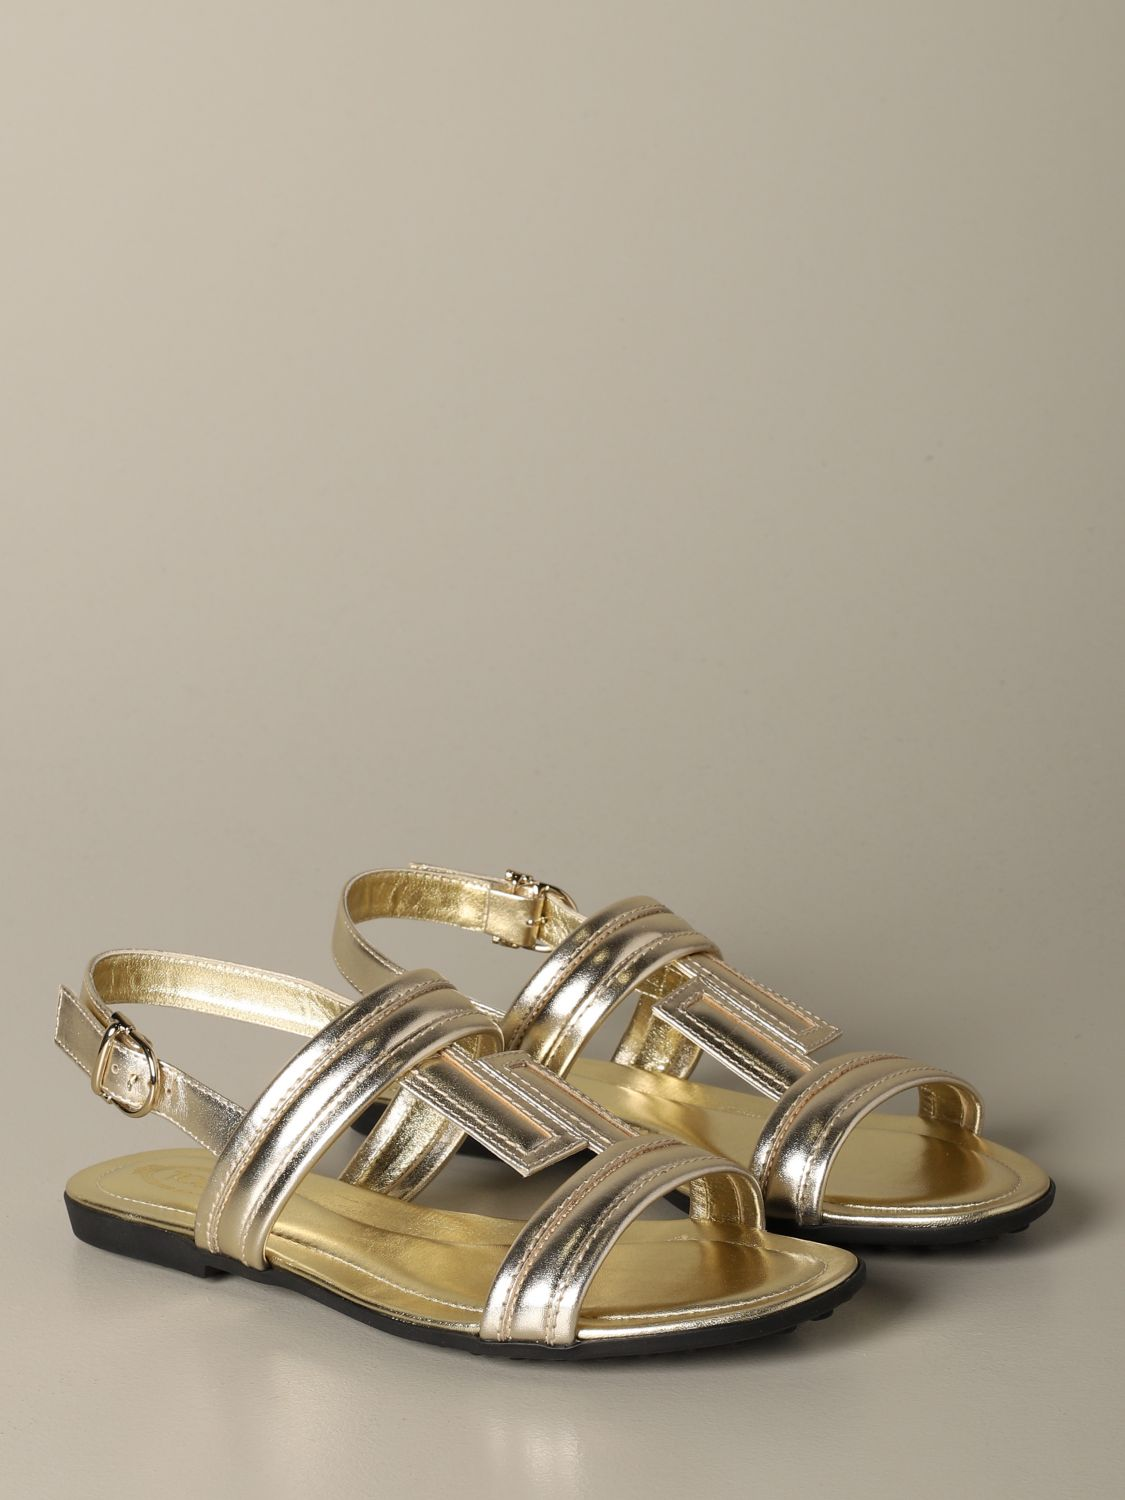 Flat sandals Tods: Shoes women Tod's gold 2